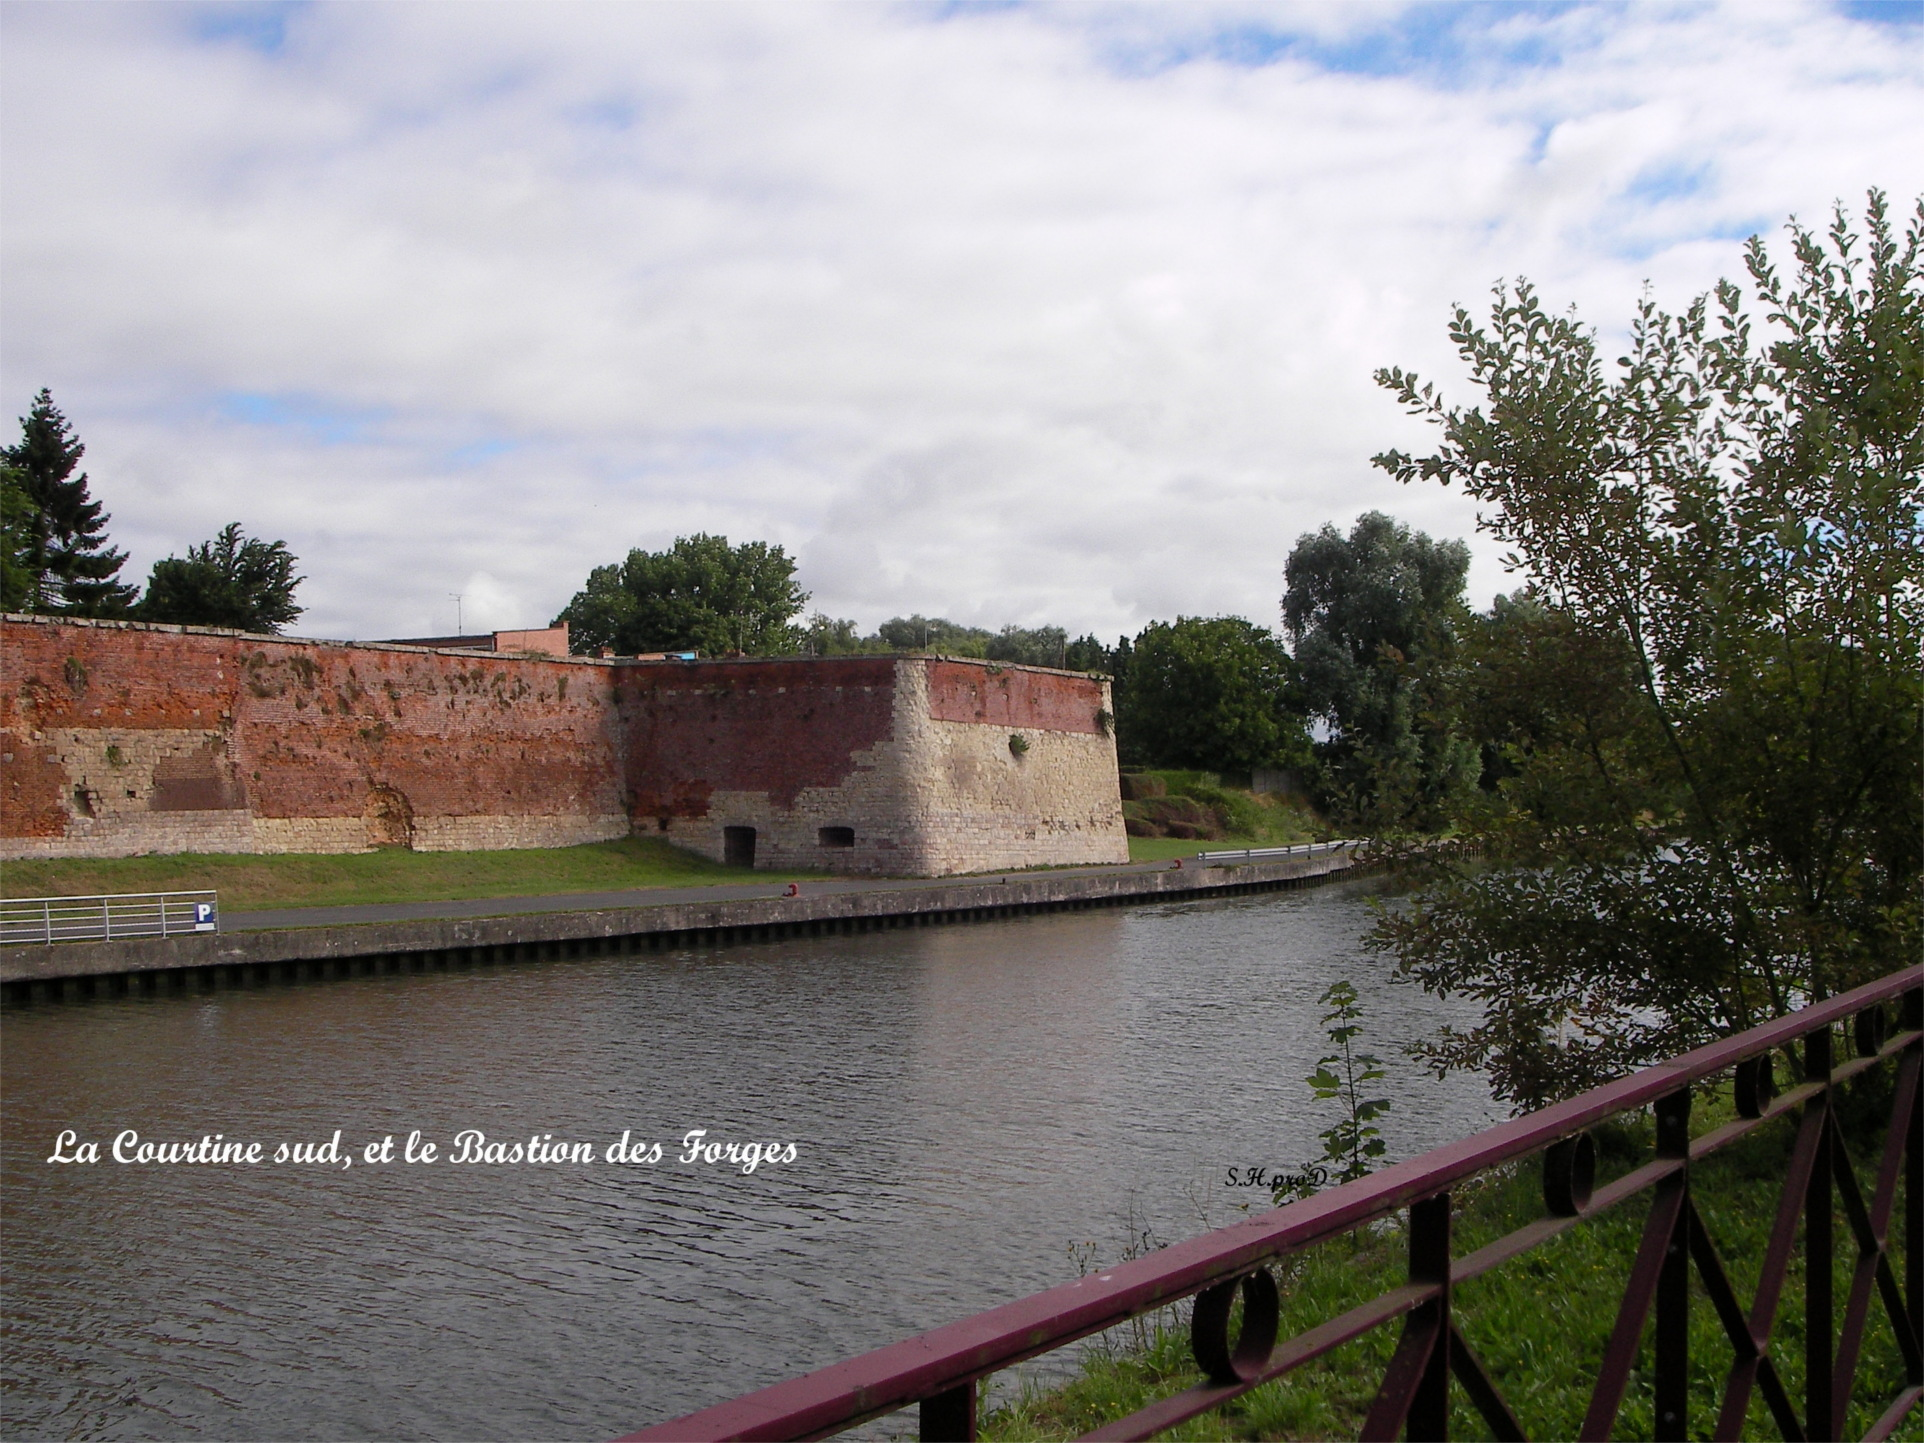 La Courtine Sud et le Bastion des Forges